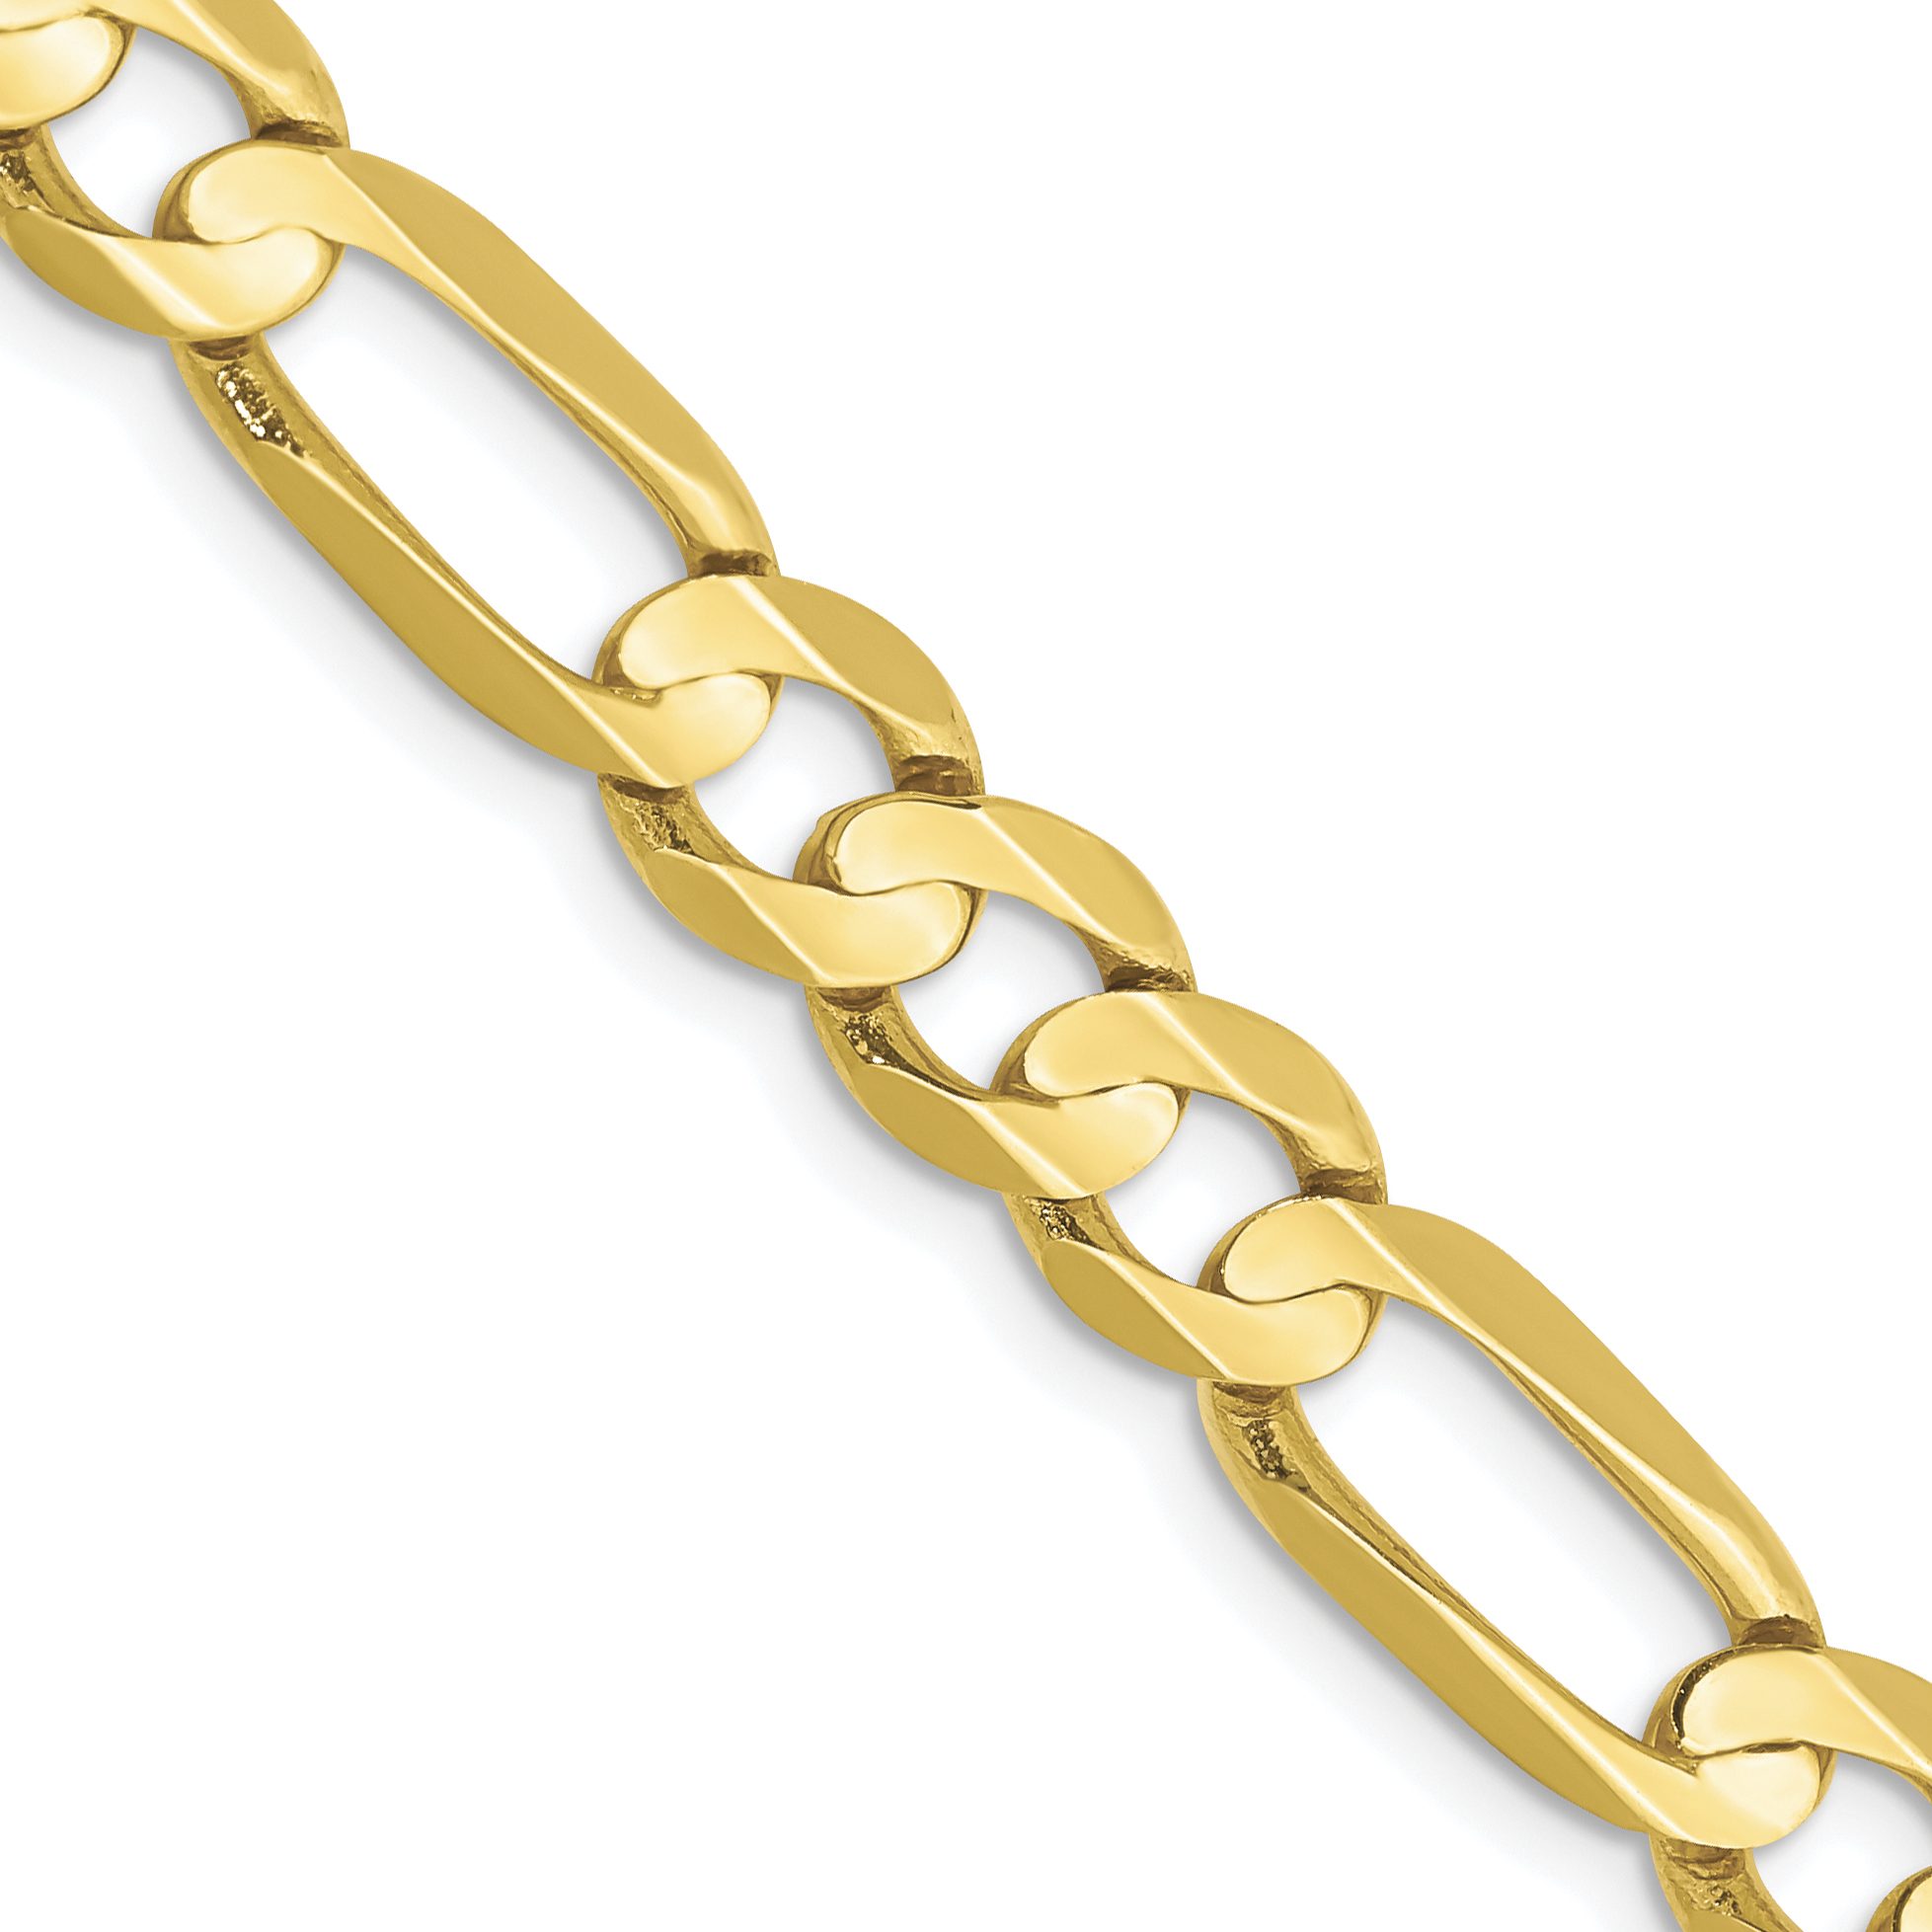 10k 6.75mm Light Concave Figaro  Chain. Weight: 23.75,  Length: 20